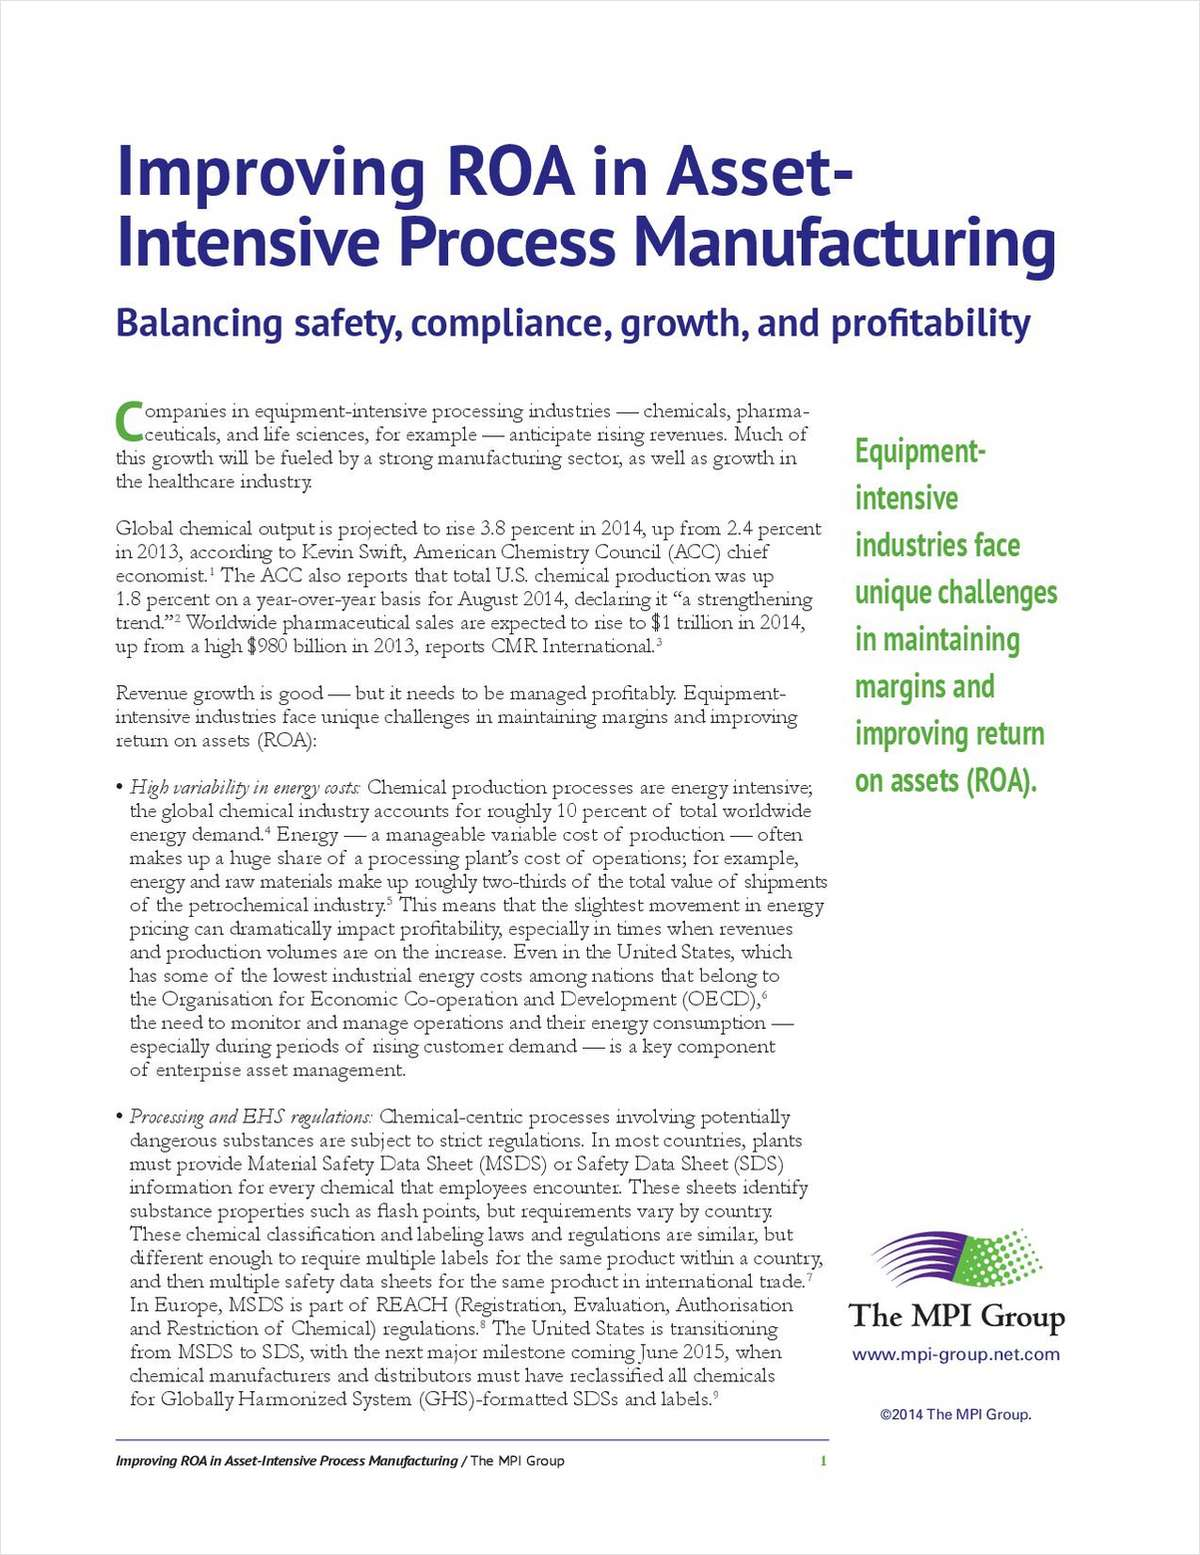 Improving ROA in Asset-Intensive Process Manufacturing